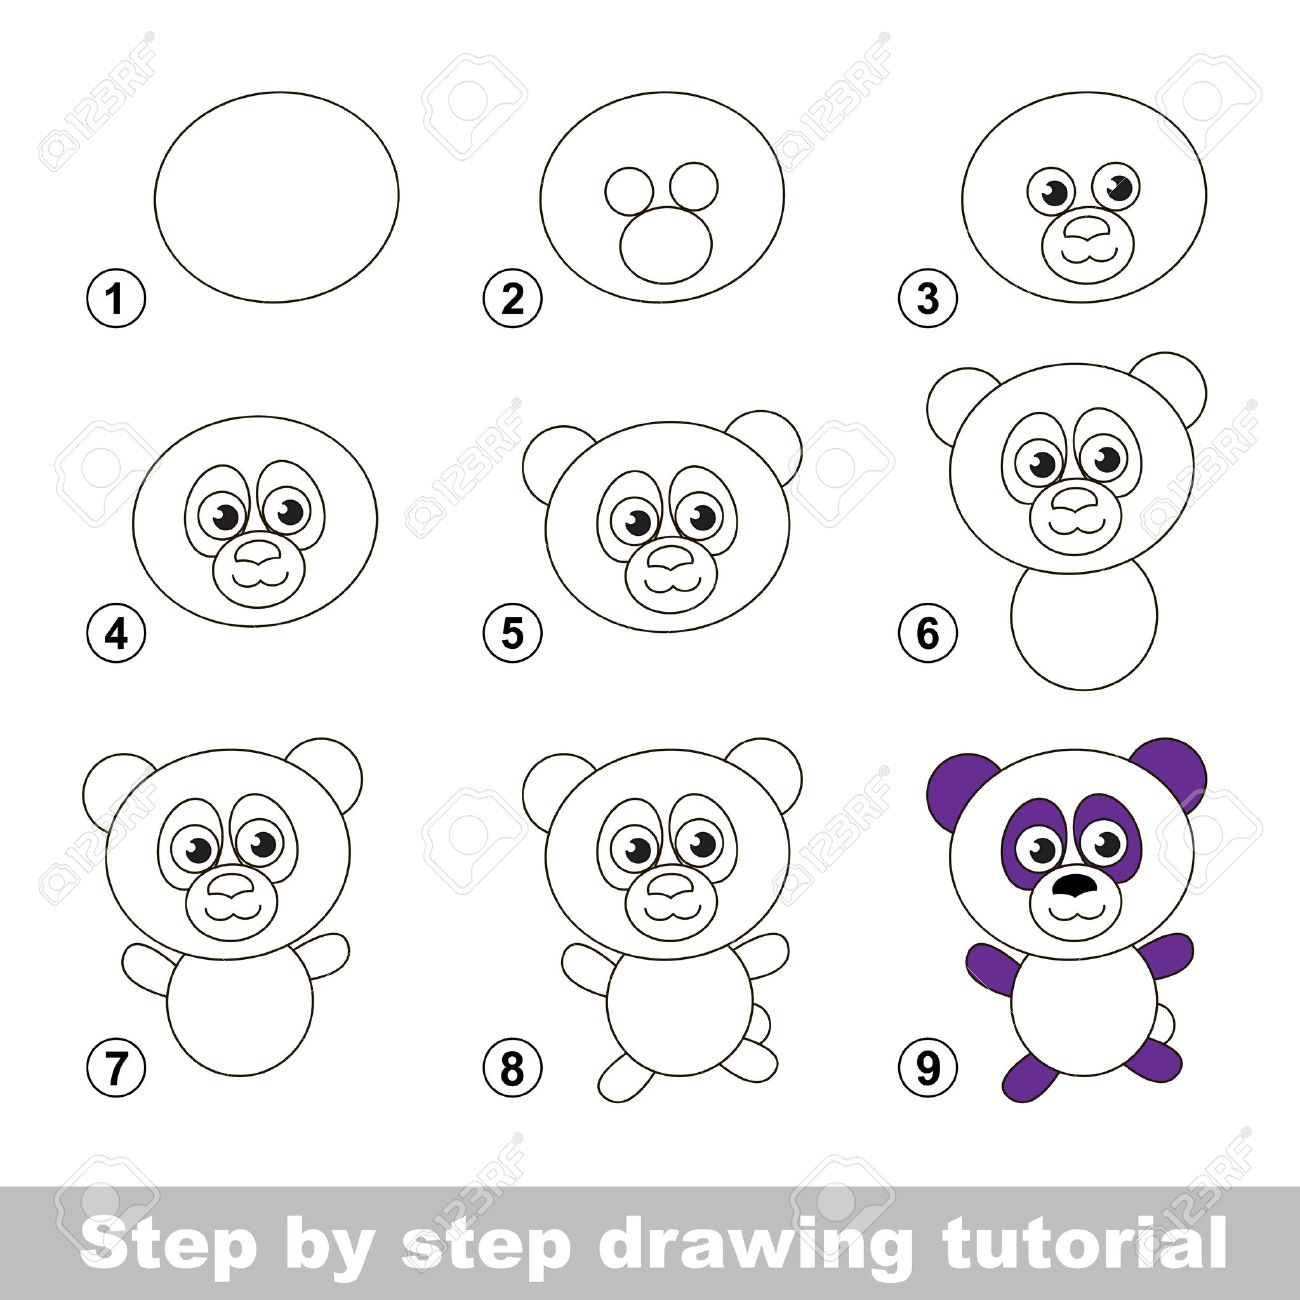 Step By Step Drawing Tutorial Visual Game For Kids How To Draw Royalty Free Cliparts Vectors And Stock Illustration Image 53538365